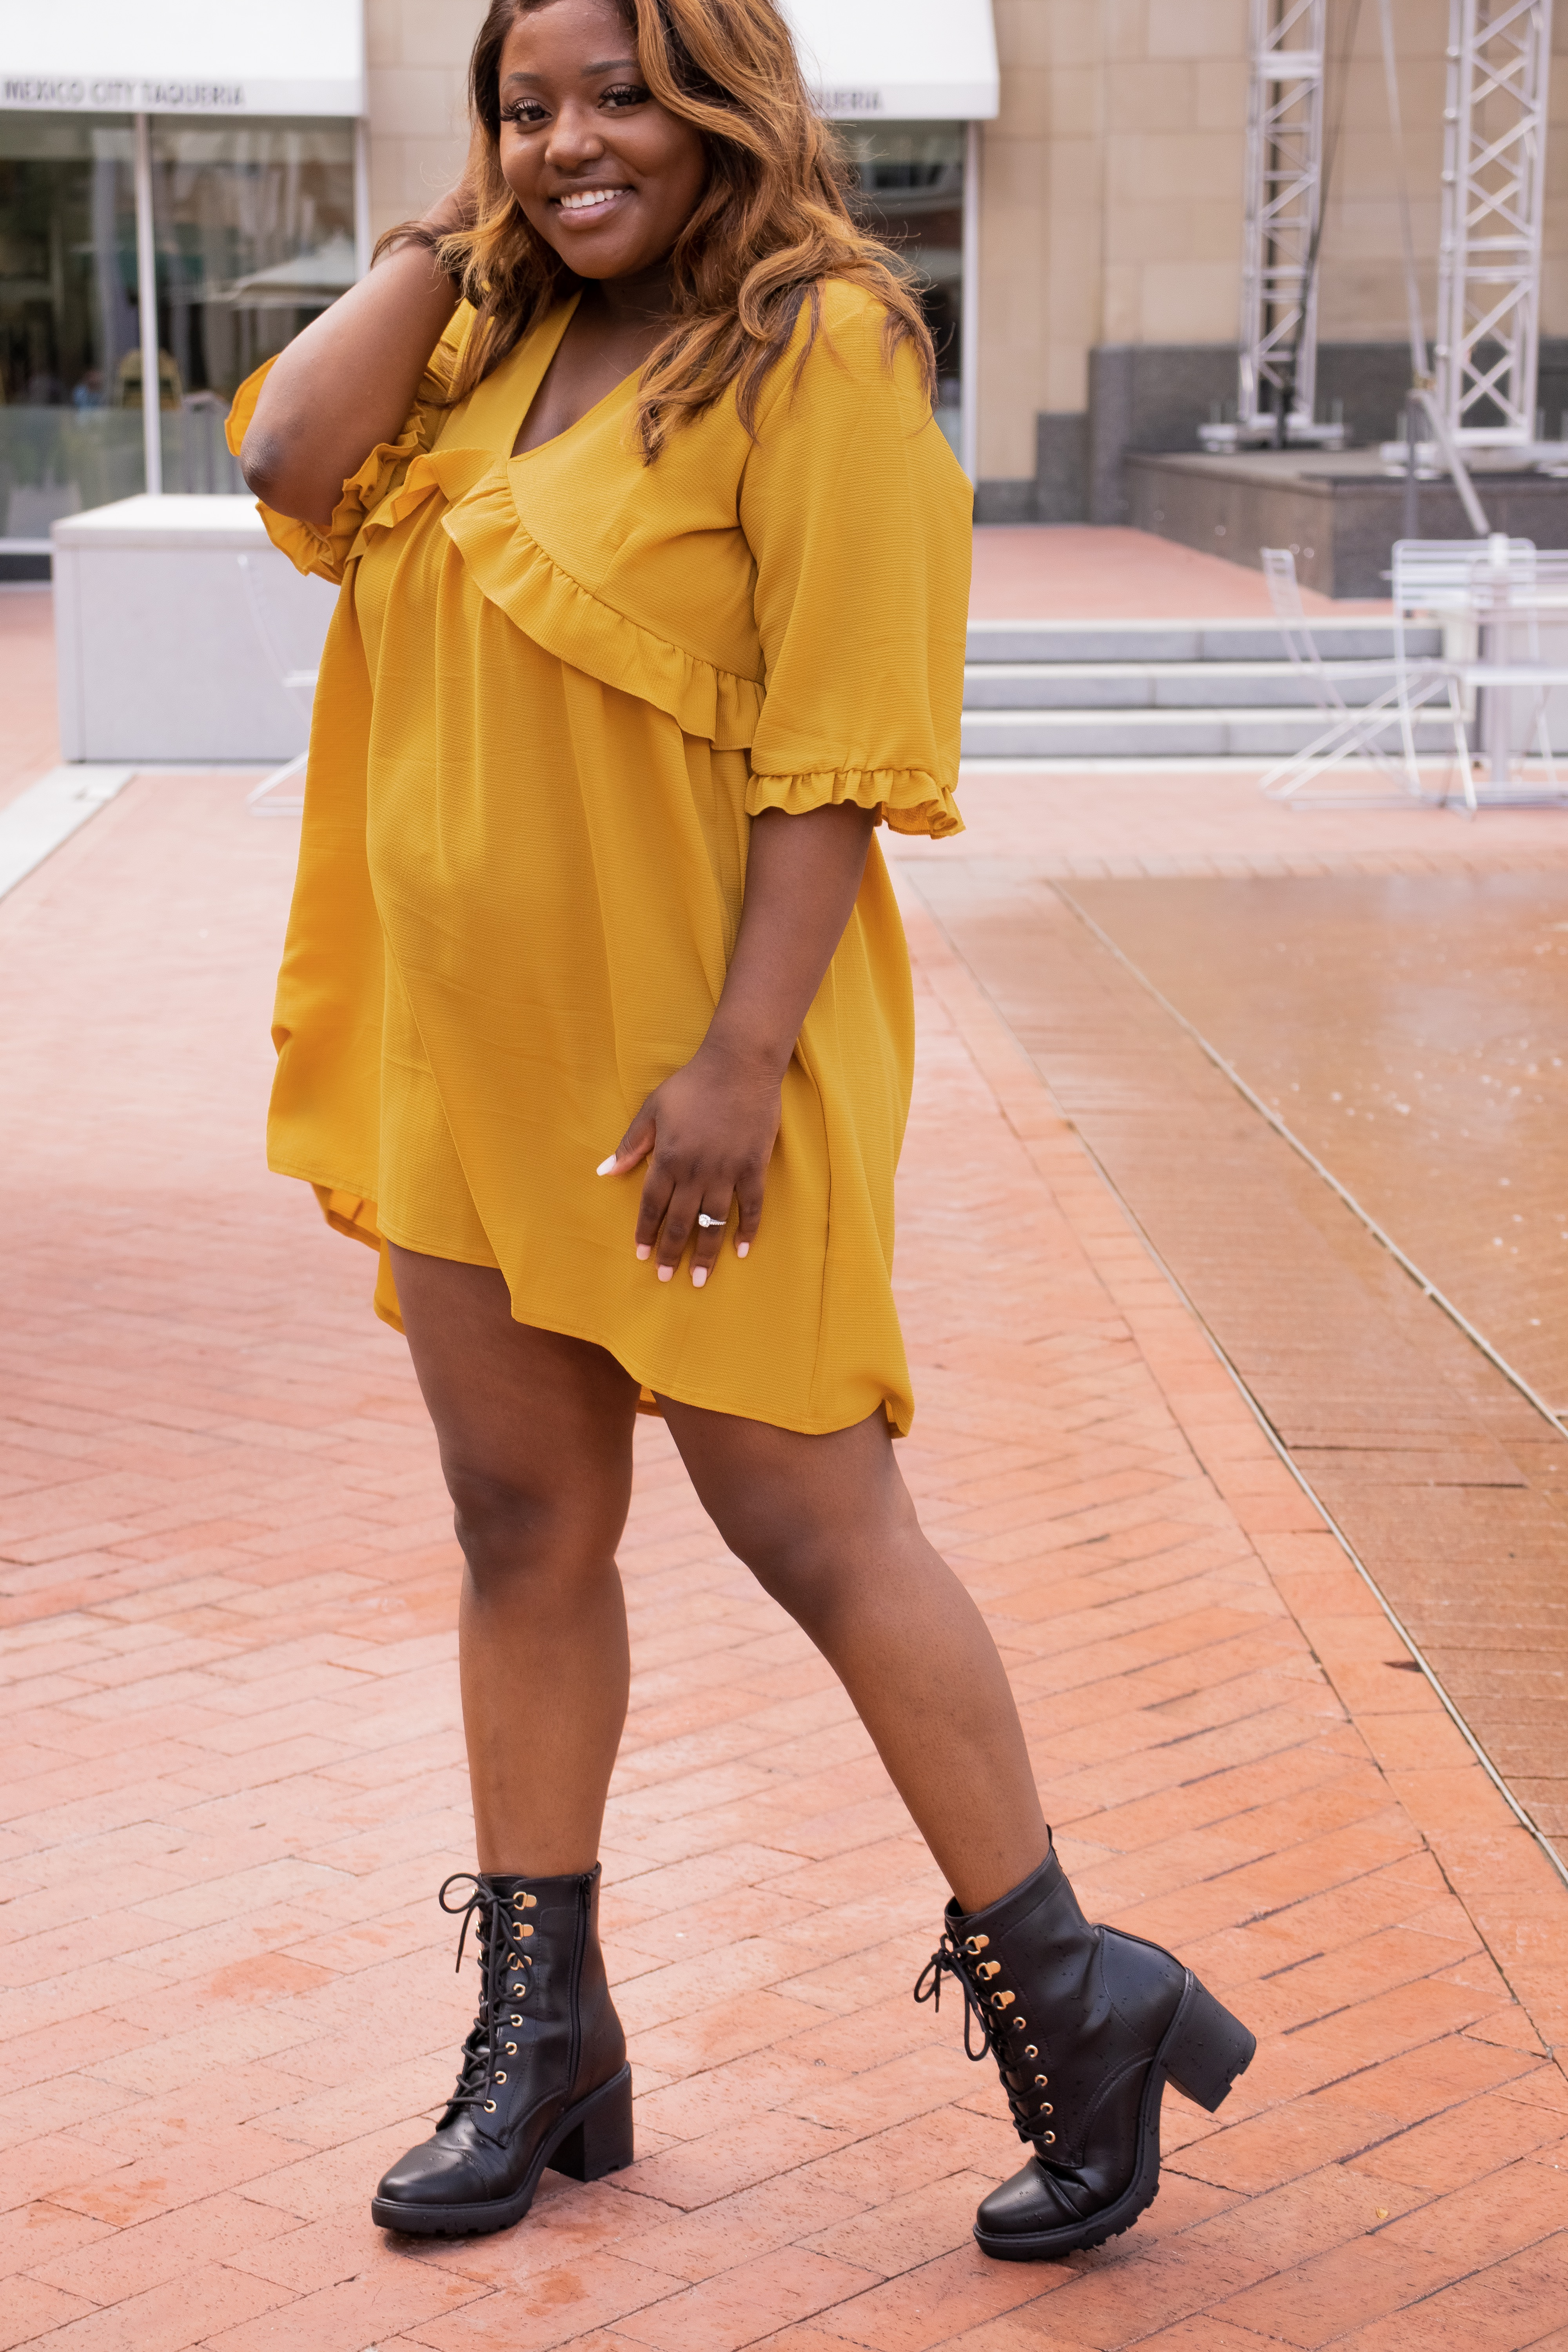 combat boots from Shoedazzle